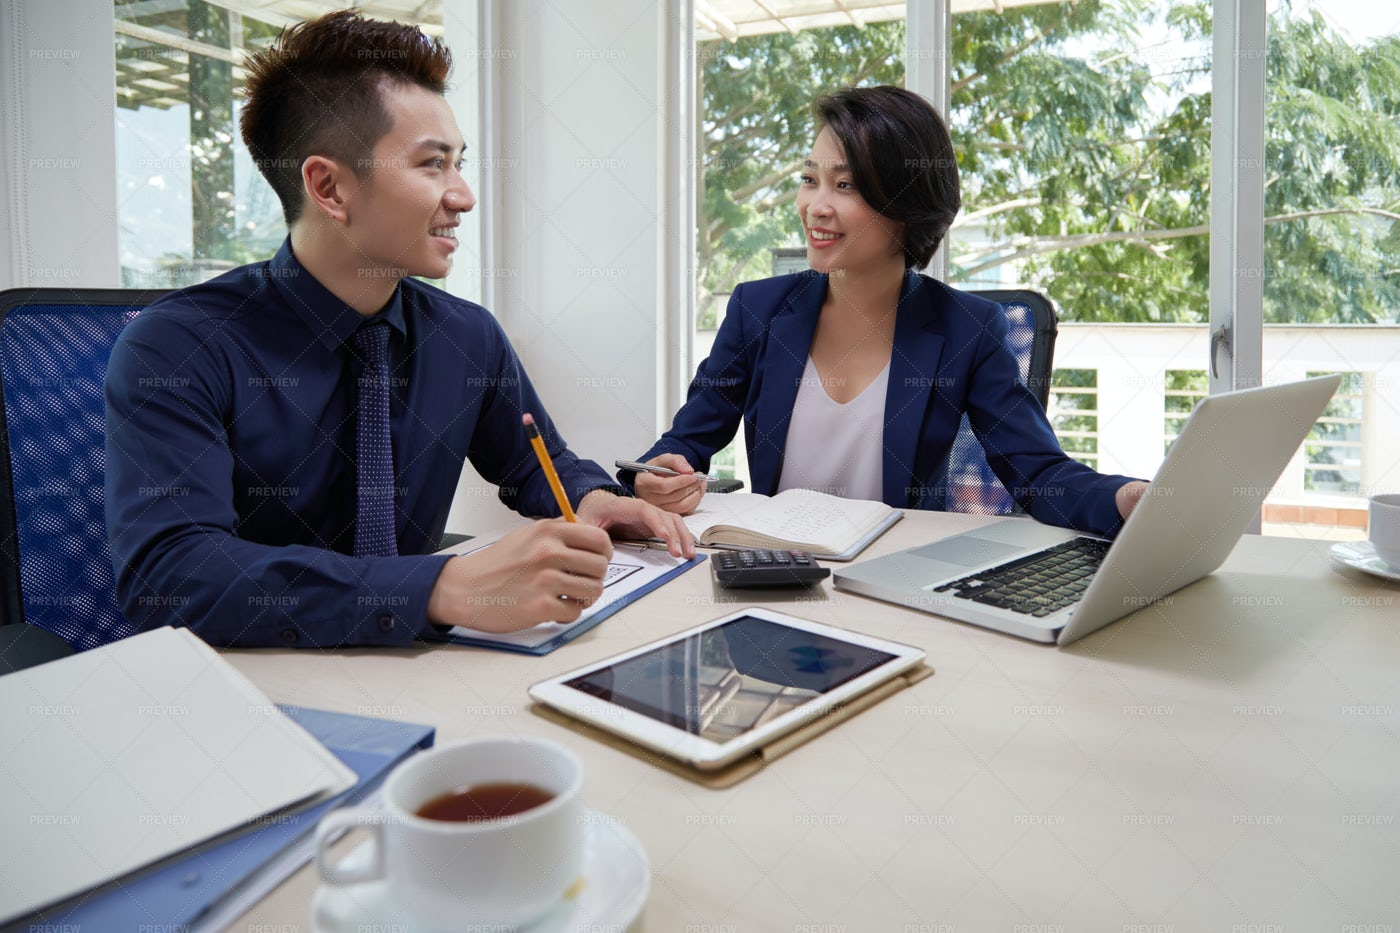 People Working With Business: Stock Photos